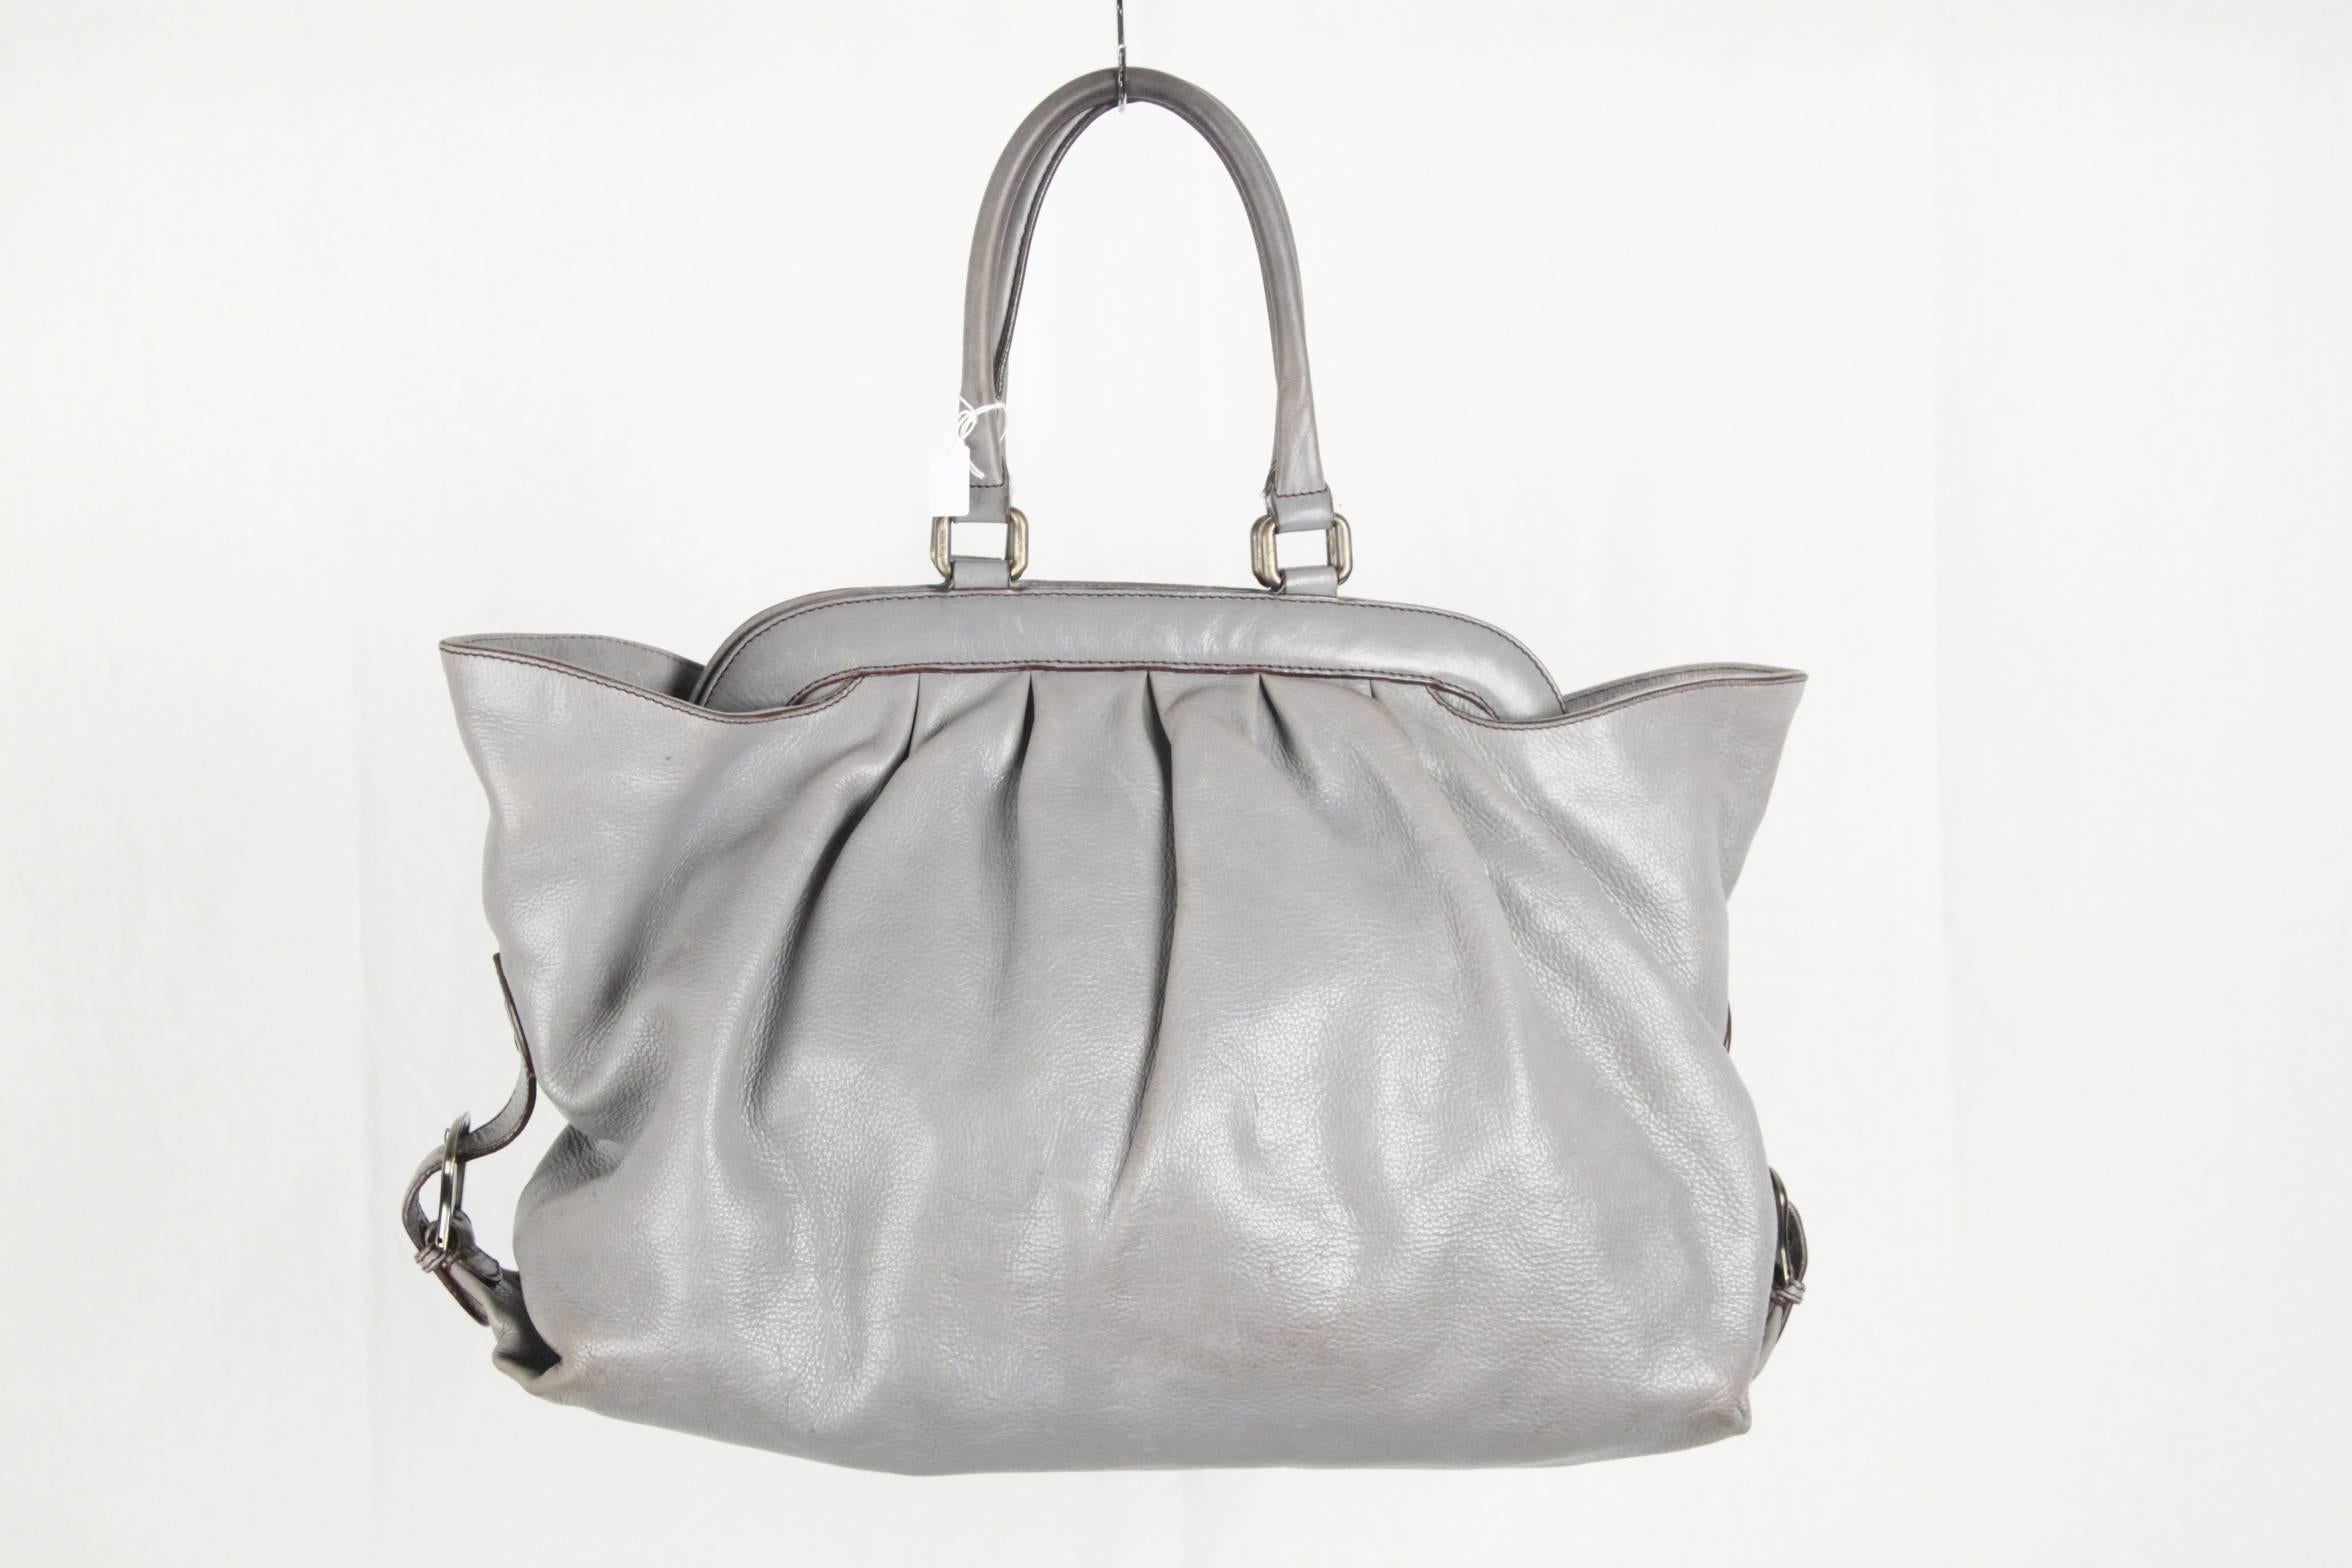 6b0d30ec30 ... sweden fendi gray leather doctor tote bag for sale at 1stdibs bb4c1  4dd34 ...